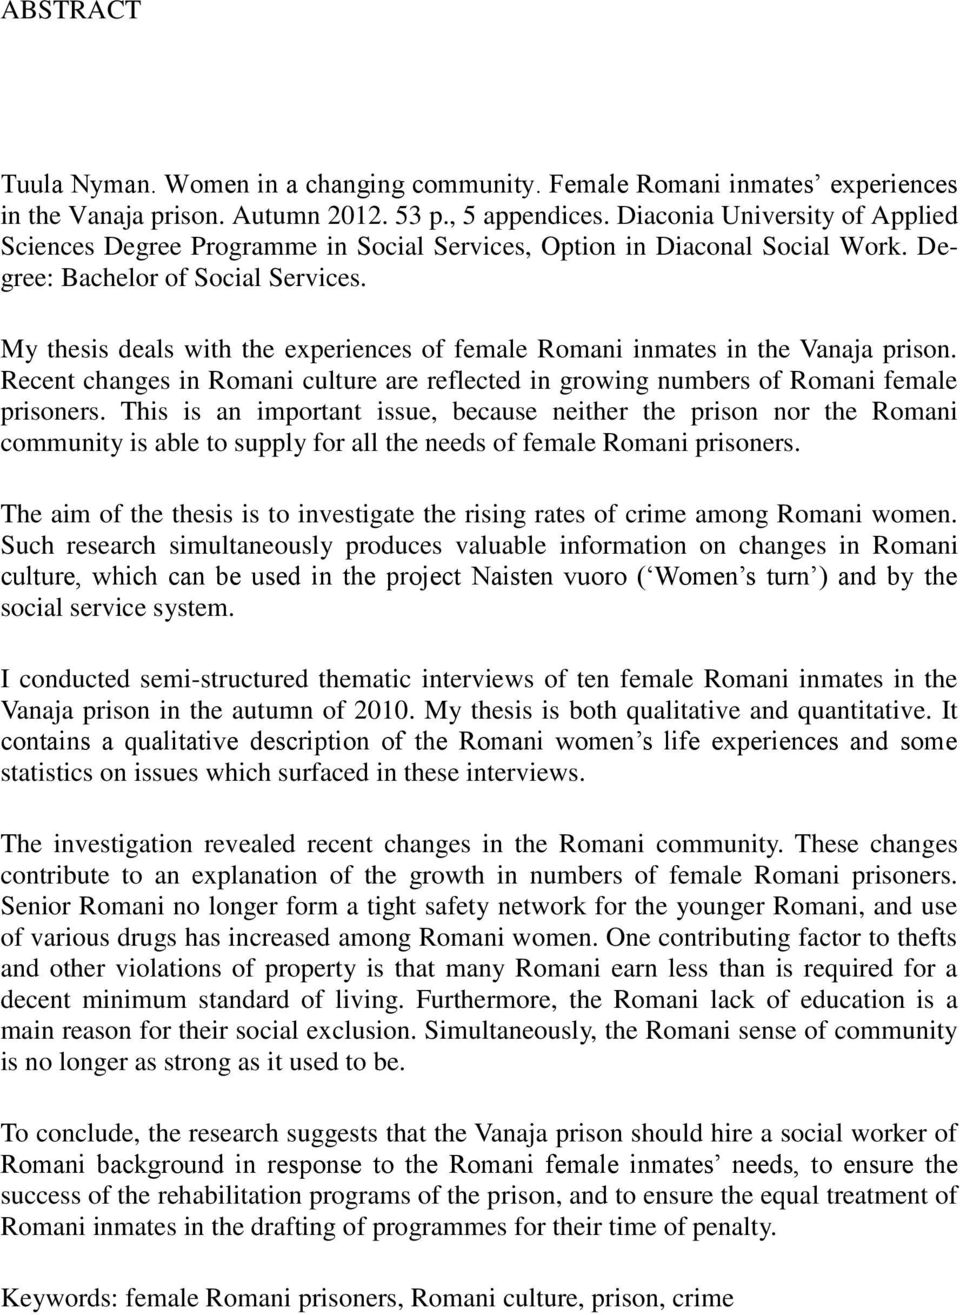 My thesis deals with the experiences of female Romani inmates in the Vanaja prison. Recent changes in Romani culture are reflected in growing numbers of Romani female prisoners.